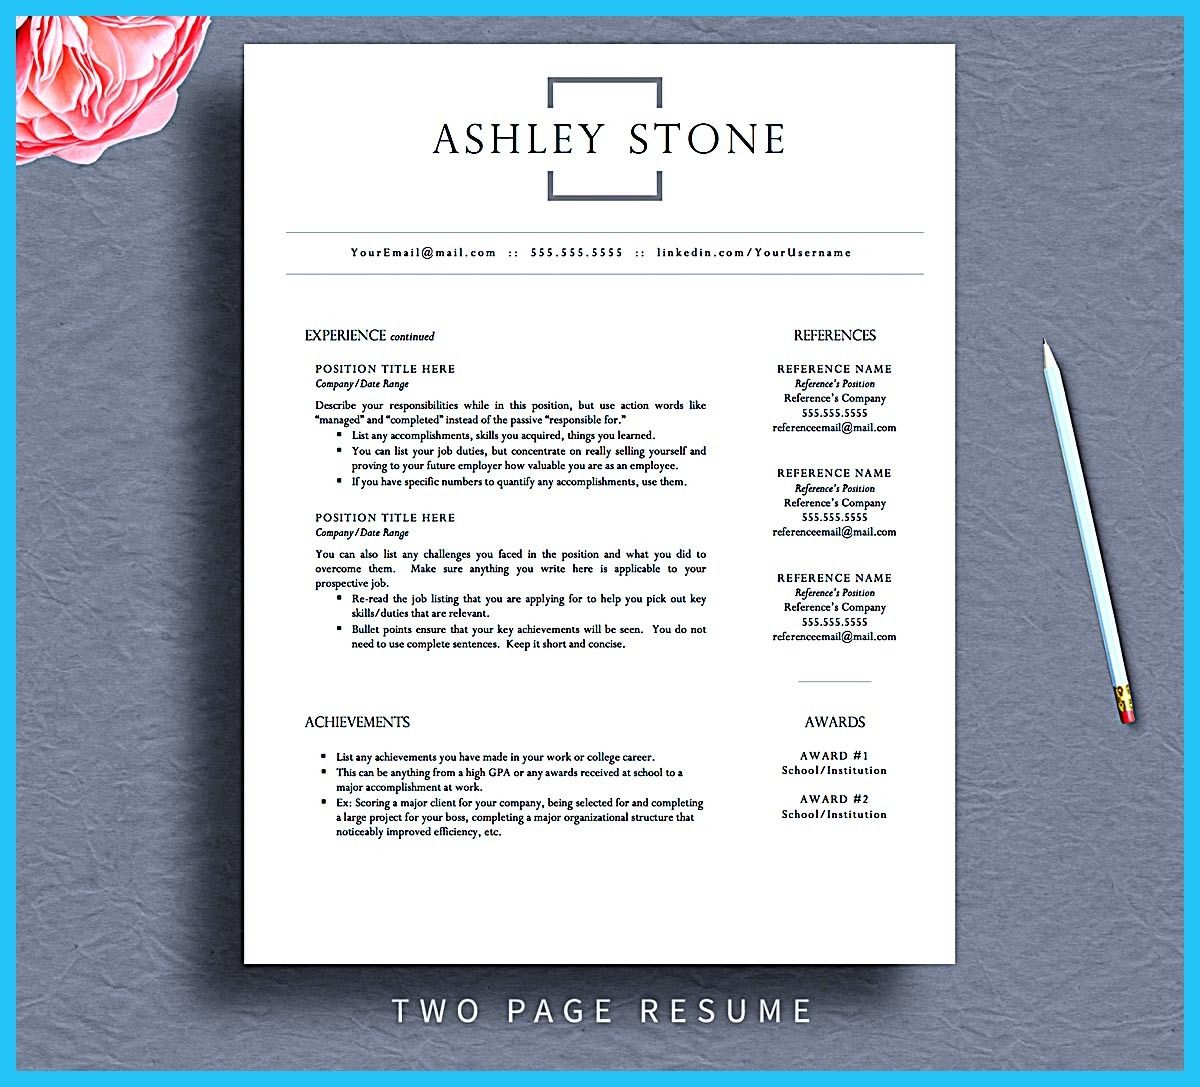 Acting Resume Beginner Impressive Nice Impressive Actor Resume Sample To Make  Resume Template .